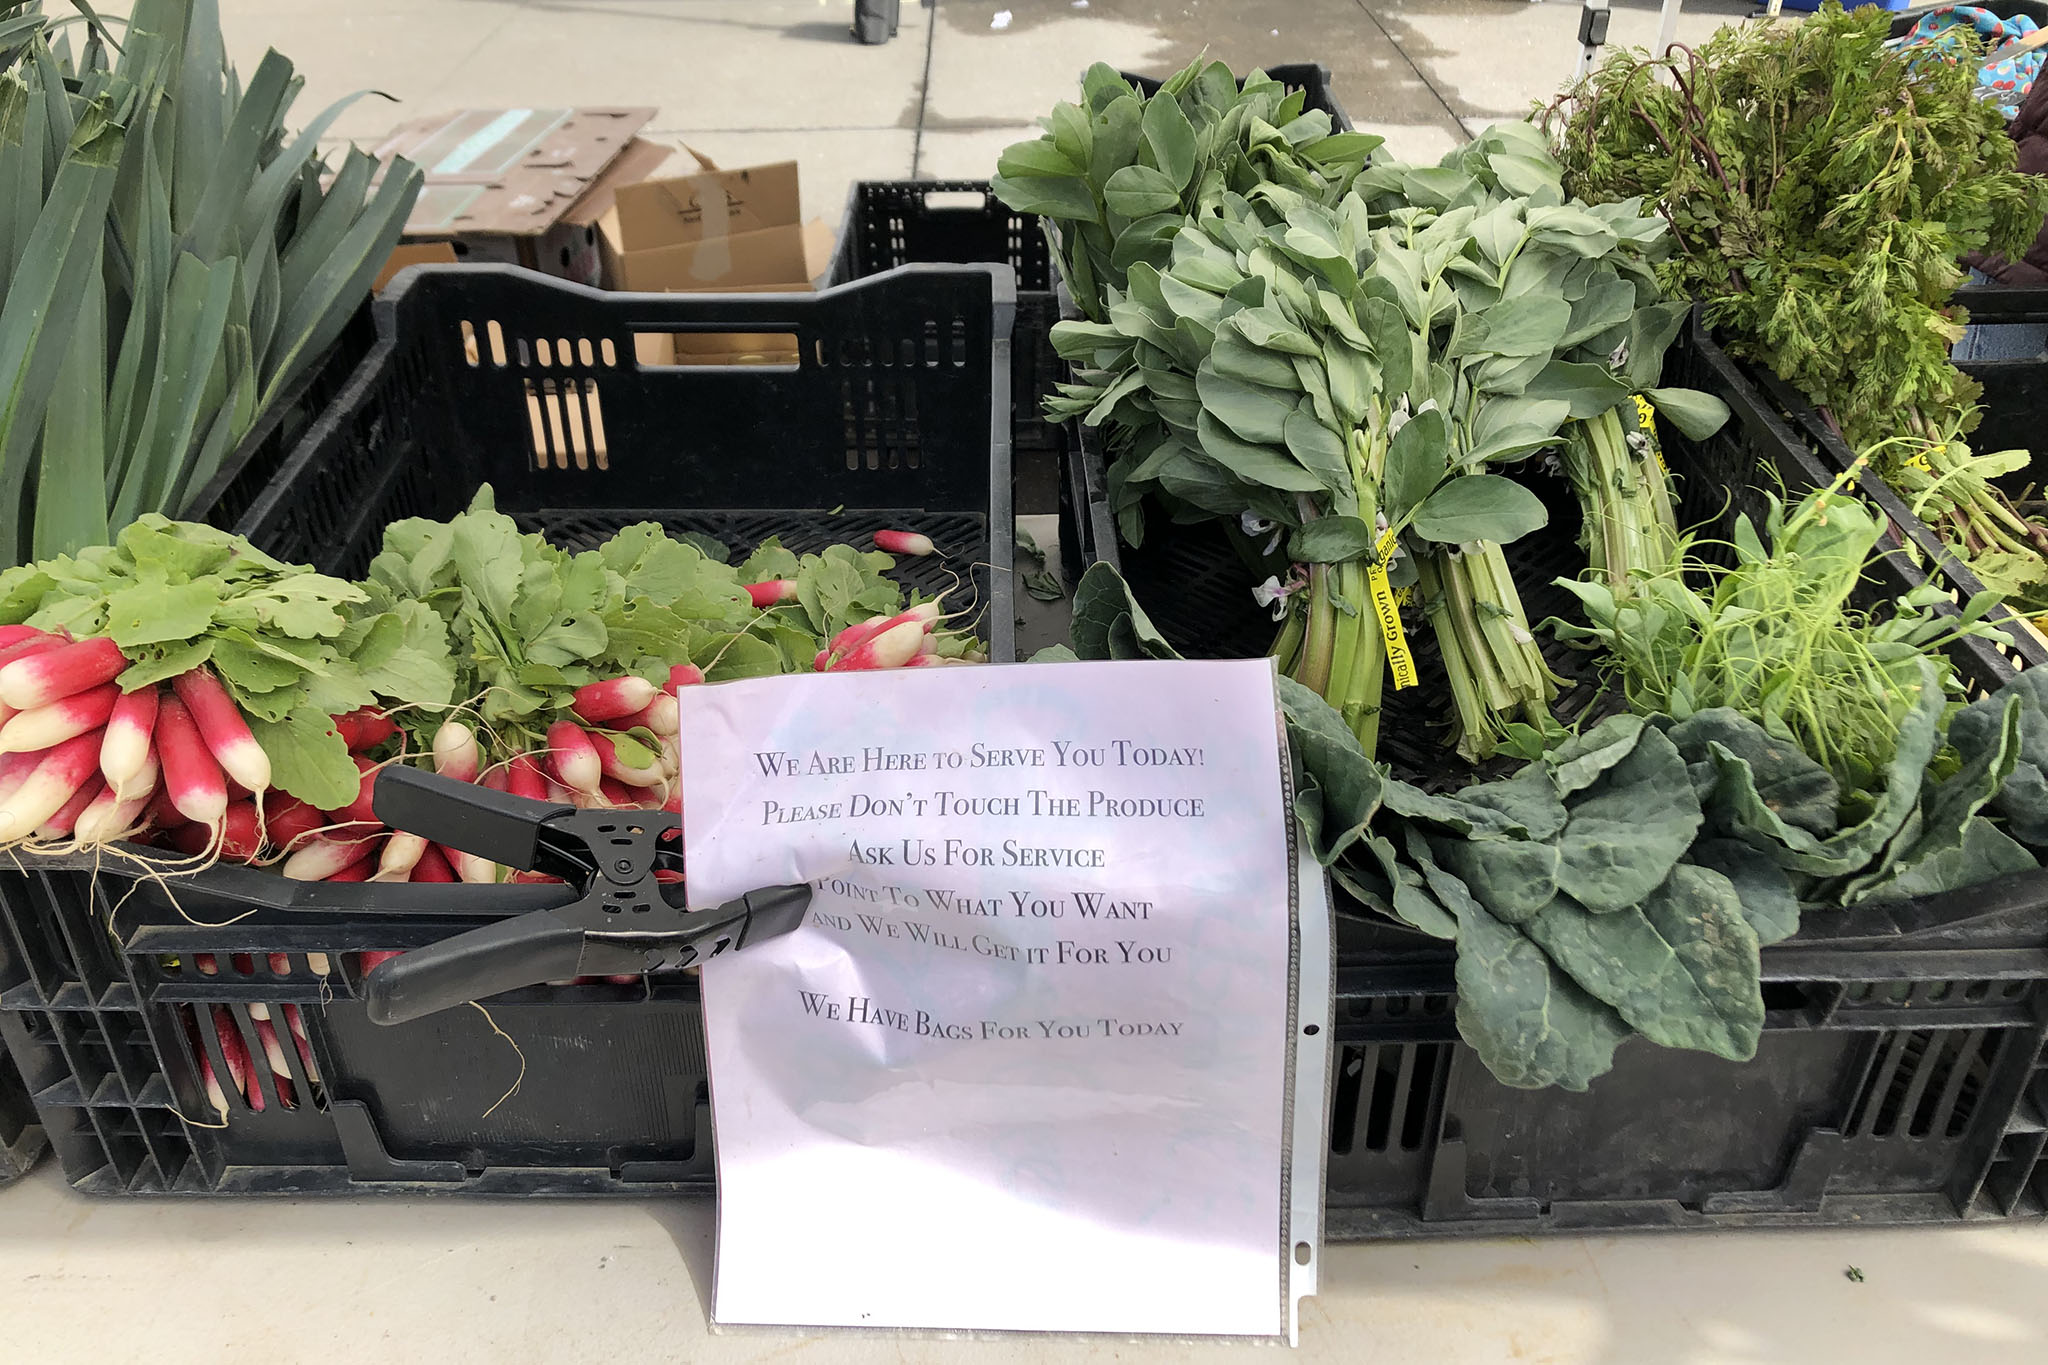 Skip grocery stores for calmer, socially-distant farmers markets